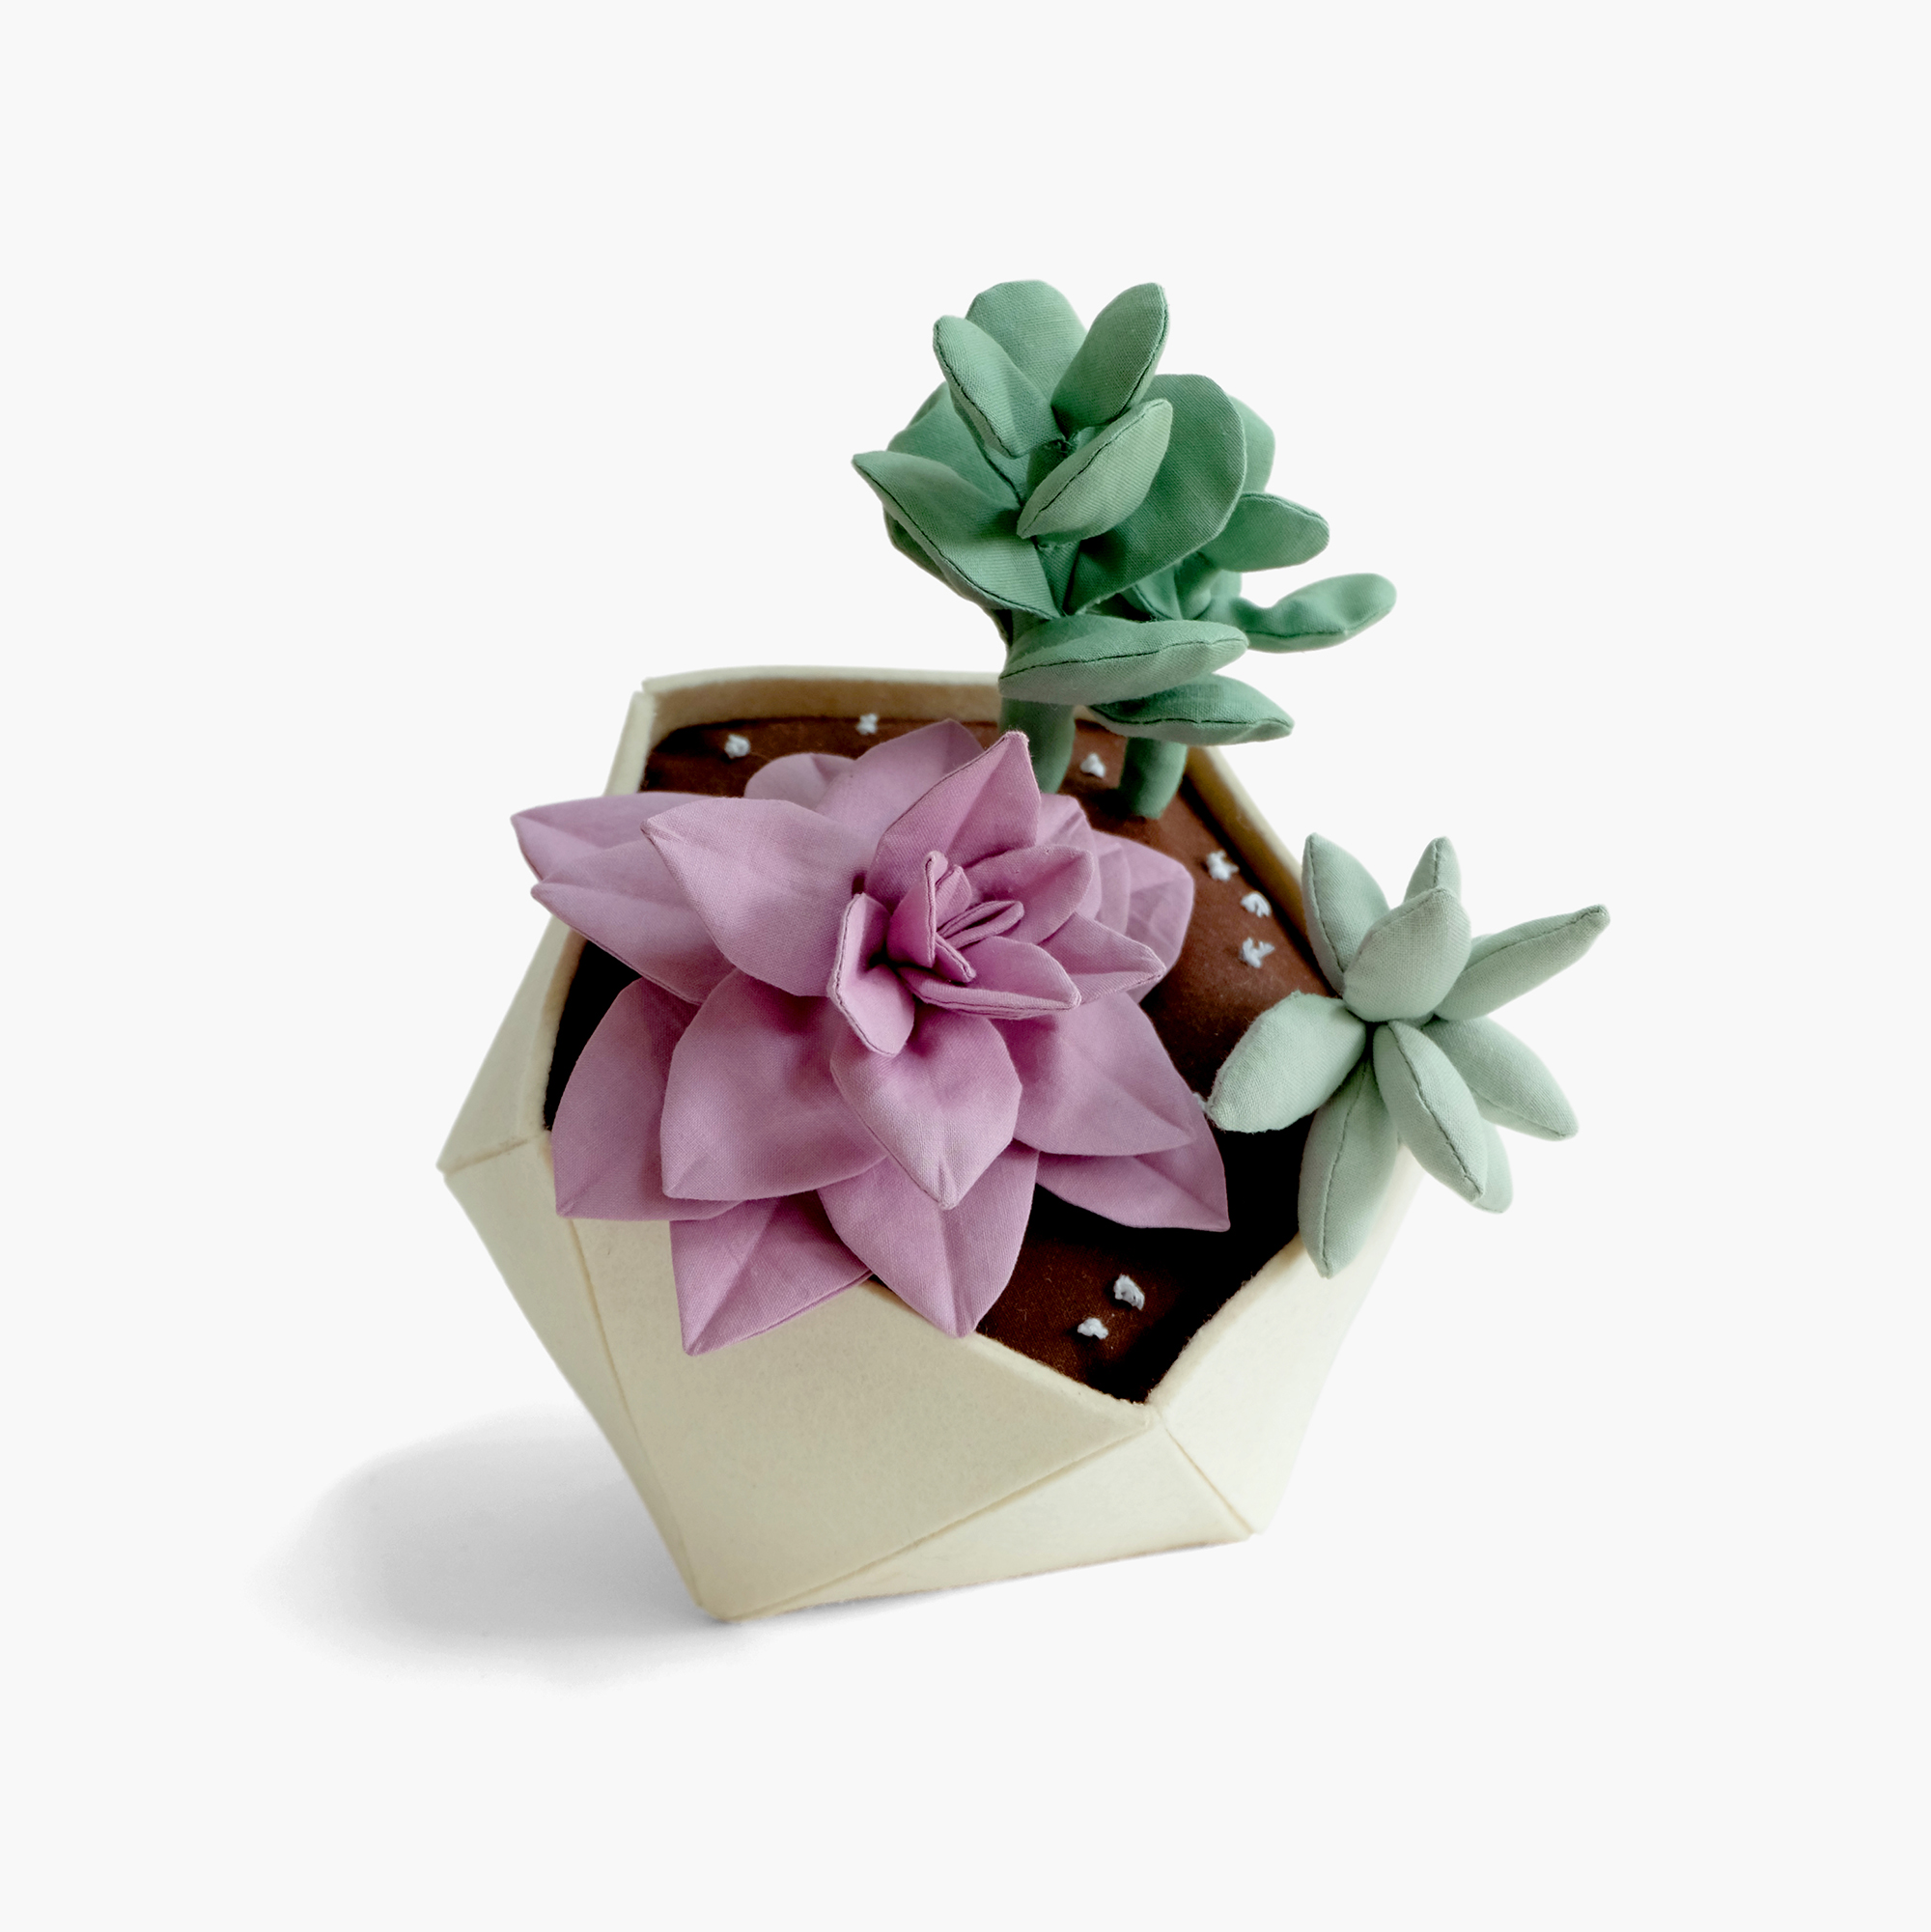 Garden Apartment    Succulents in geodesic planter   Fiberfill, felt, cotton cloth, embroidery floss 9 x 7 x 8.5 in 2014